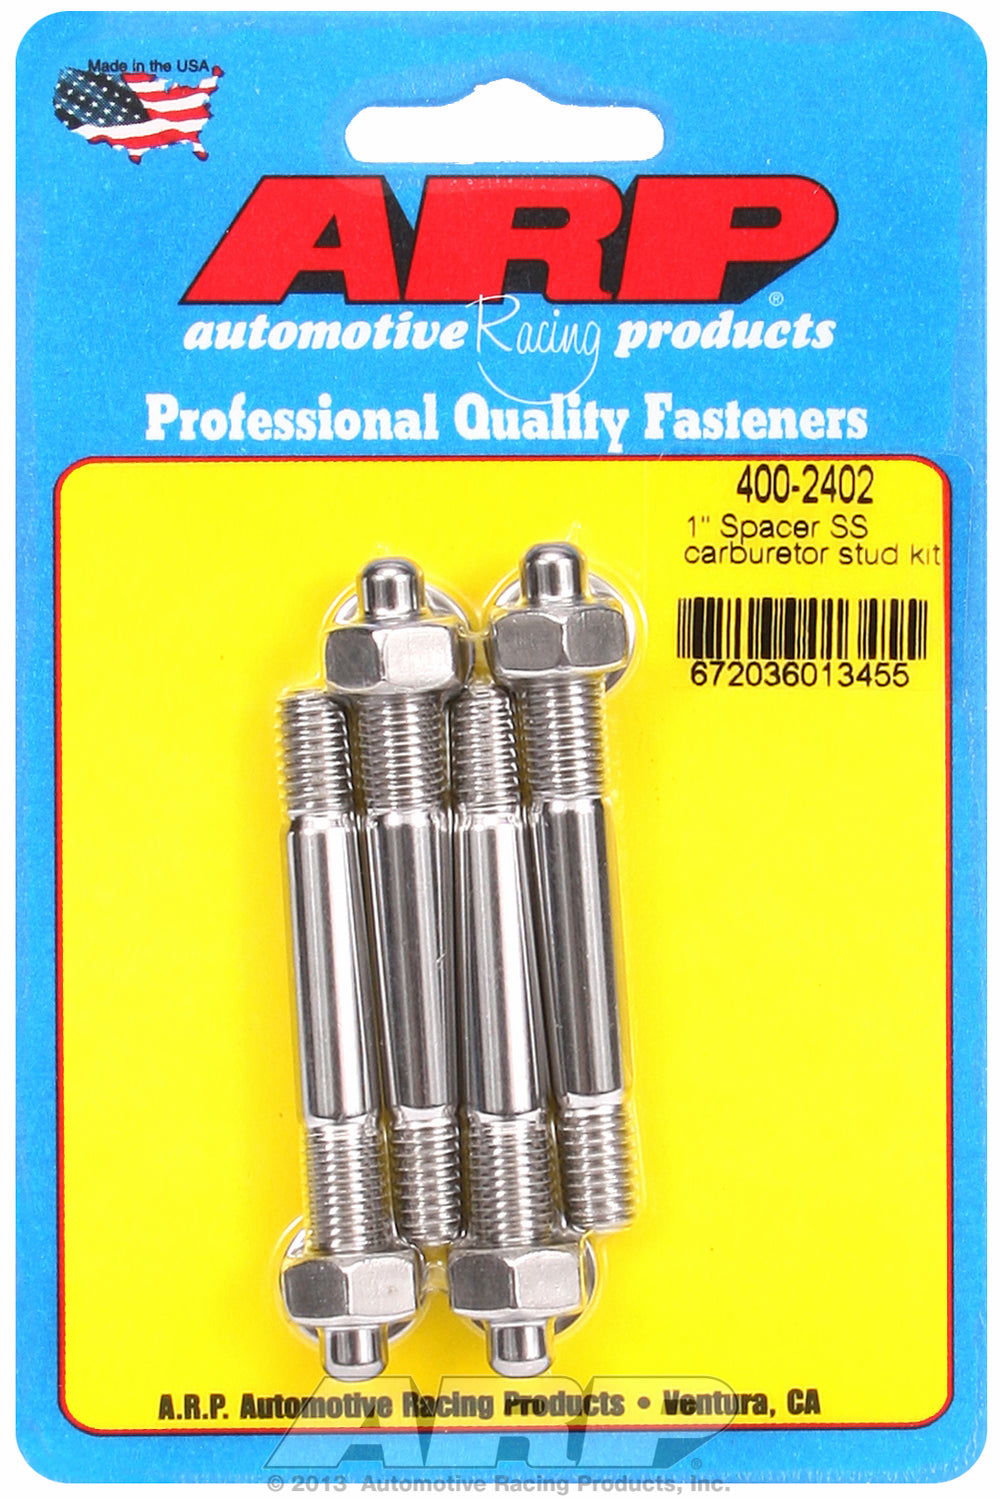 1˝ spacer Carb Stud Kit 2.7in OAL